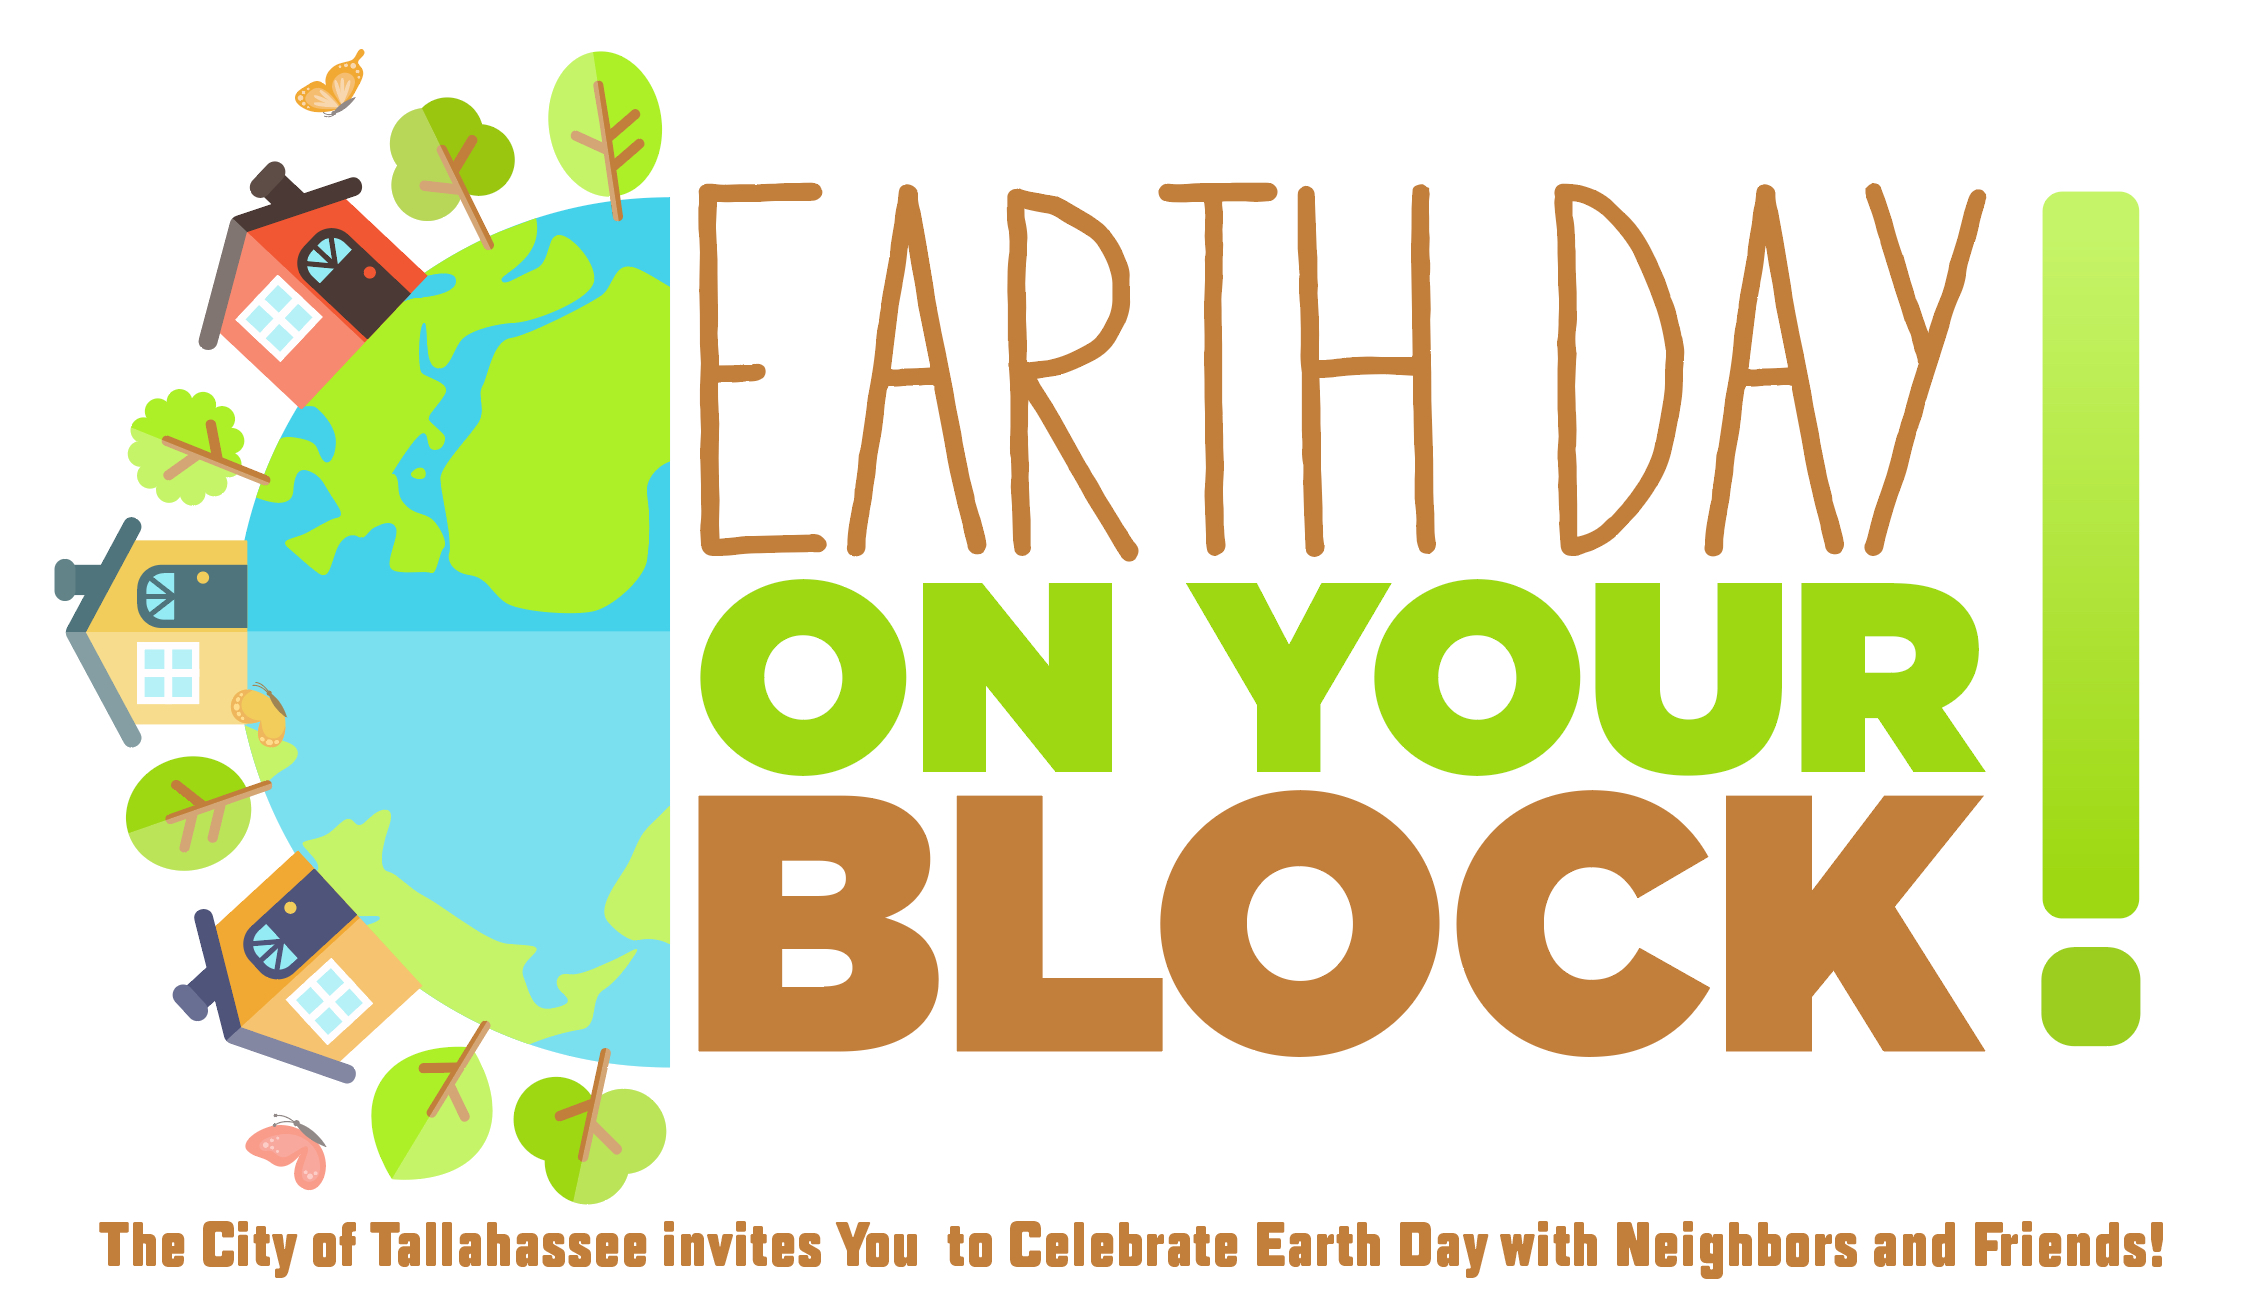 Earth Day On Your Block